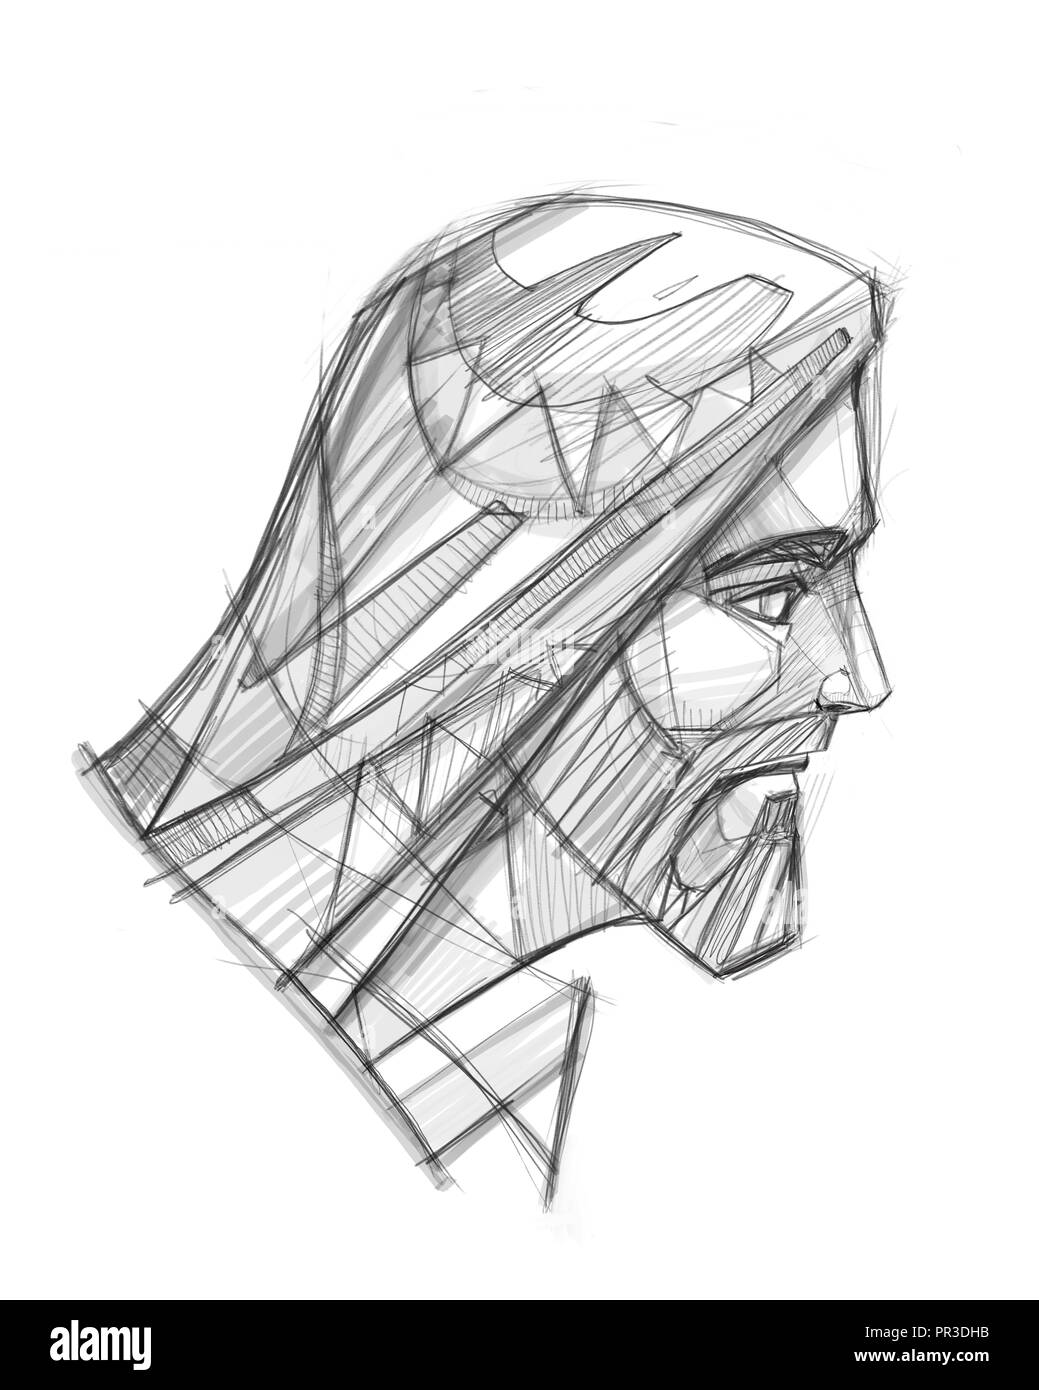 Hand drawn illustration or pencil drawing of jesus christ face stock